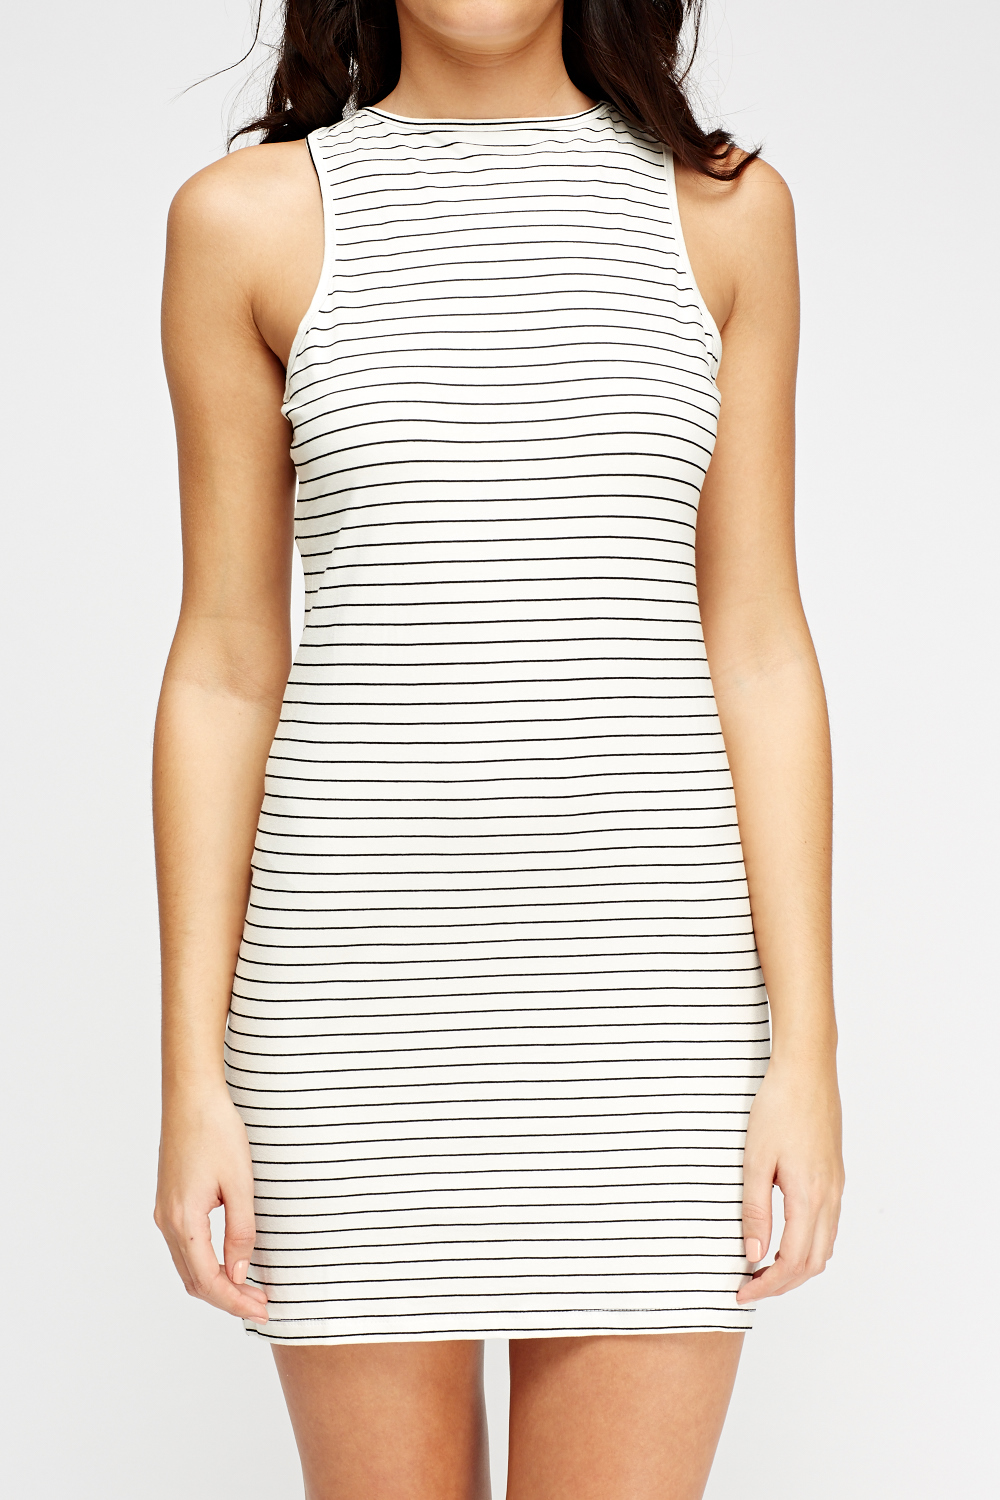 Black and white bodycon dress no dress make you look